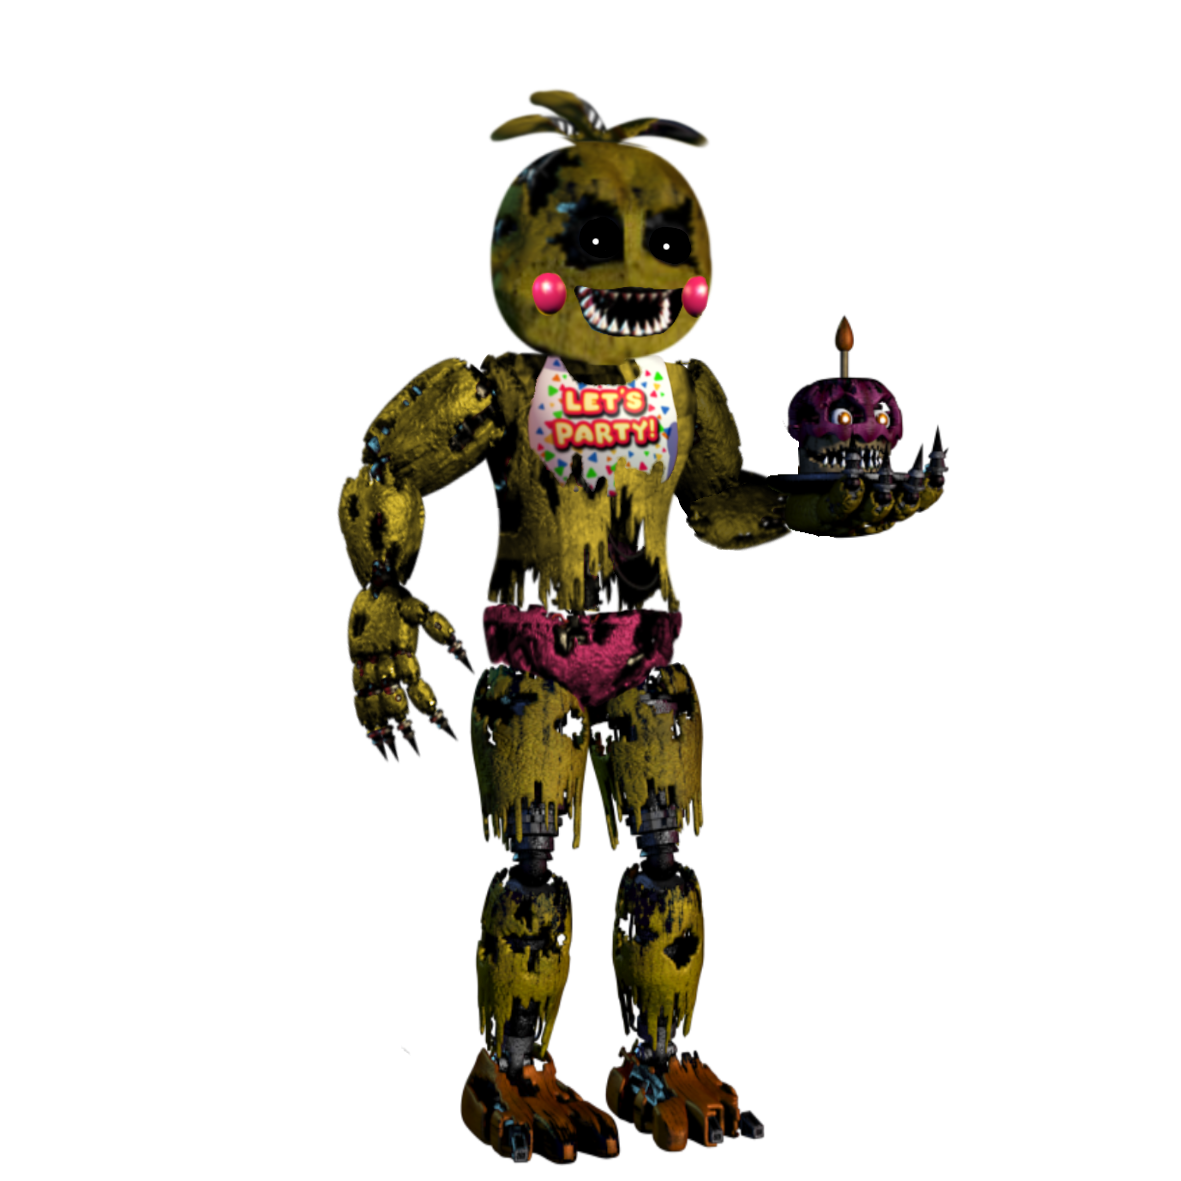 Fnaf 4 chica png. Image nightmare toy without